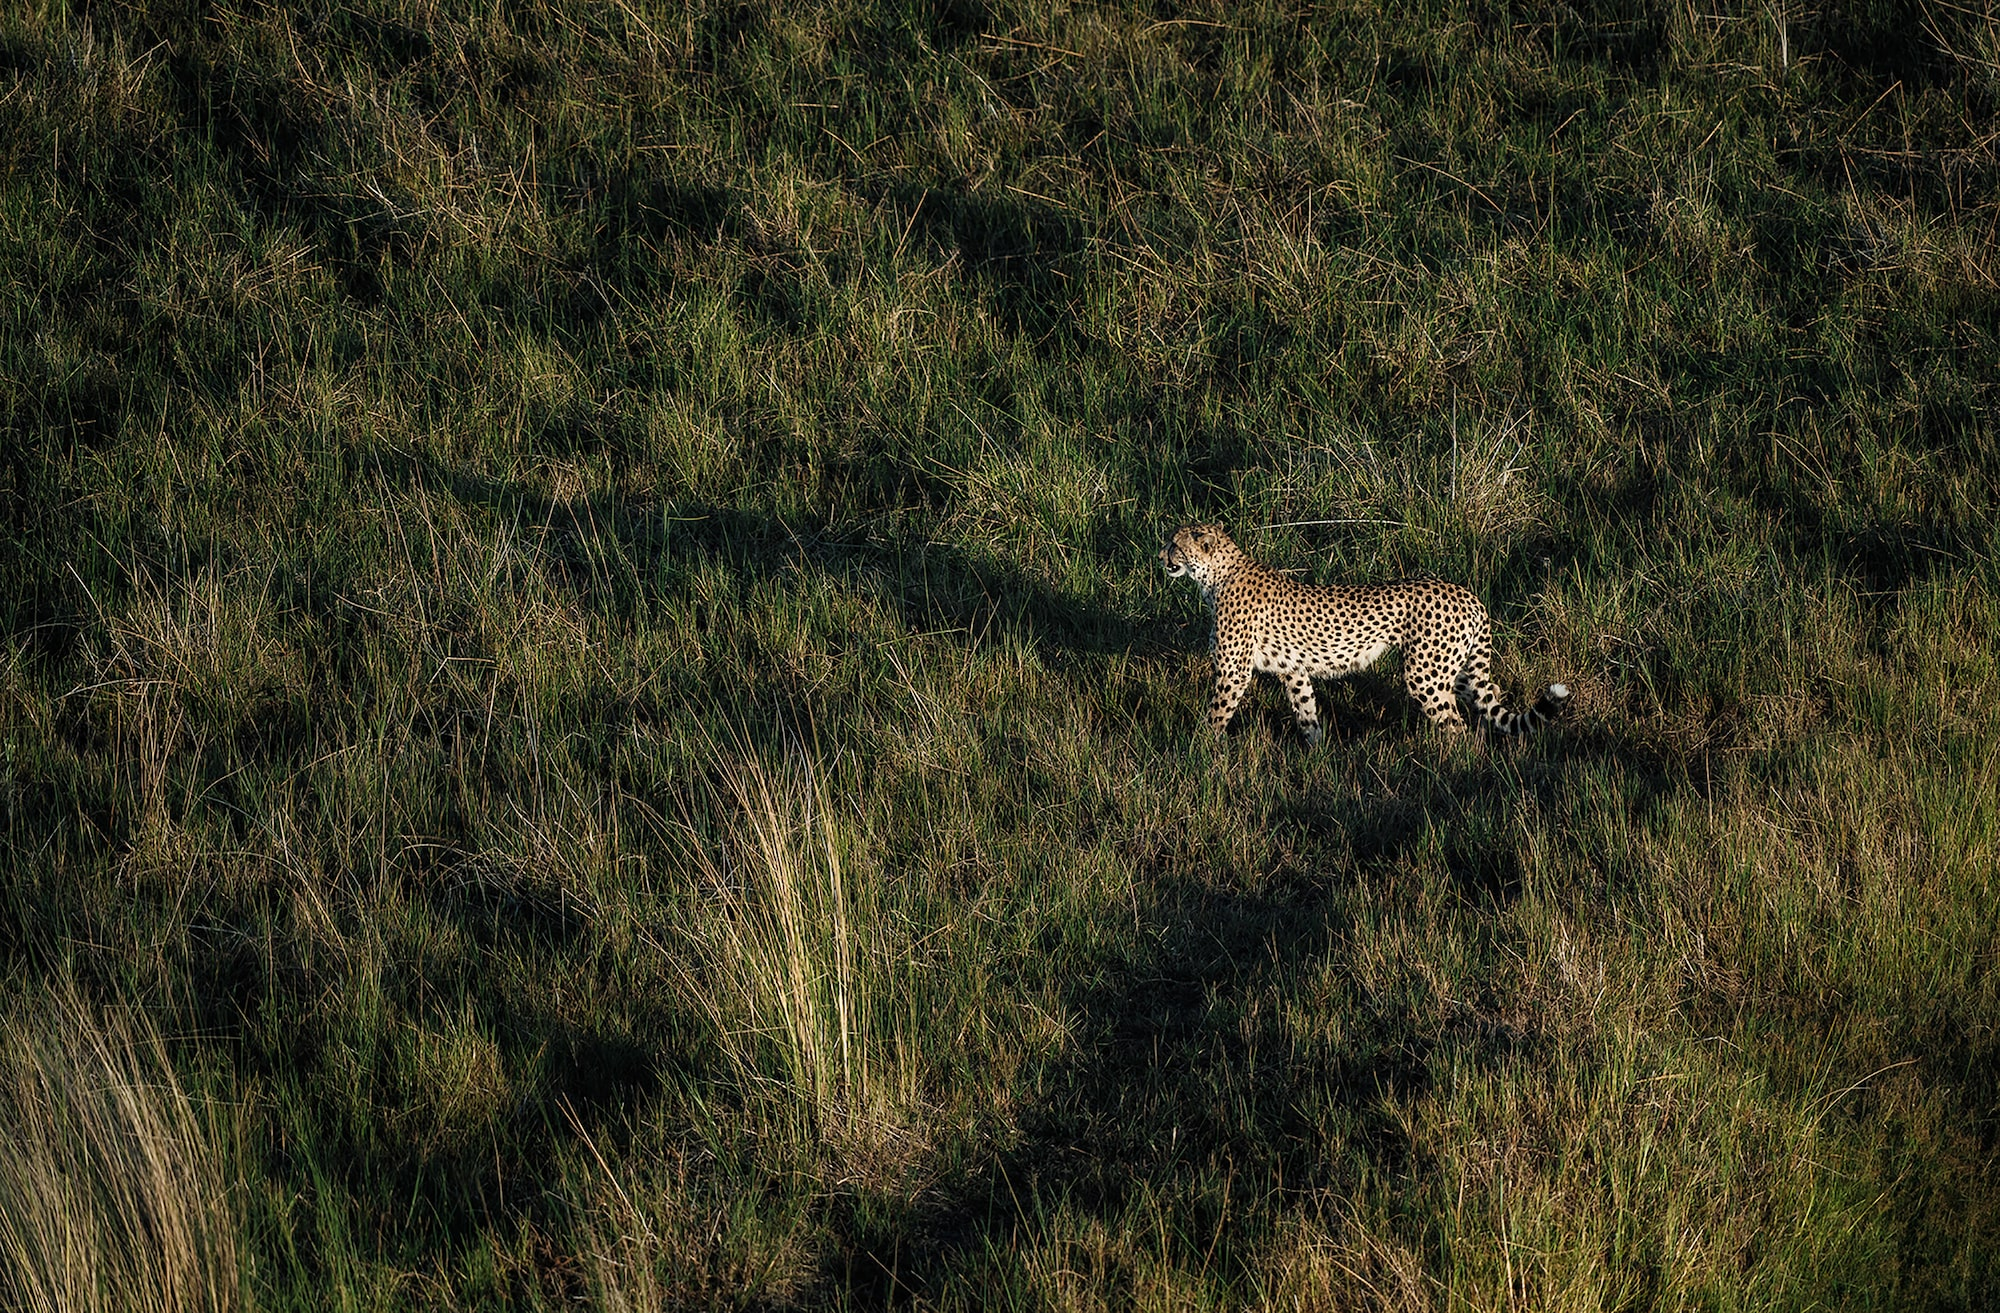 chris schmid sony alpha 9 a lone leopard crosses the grassland looking for prey